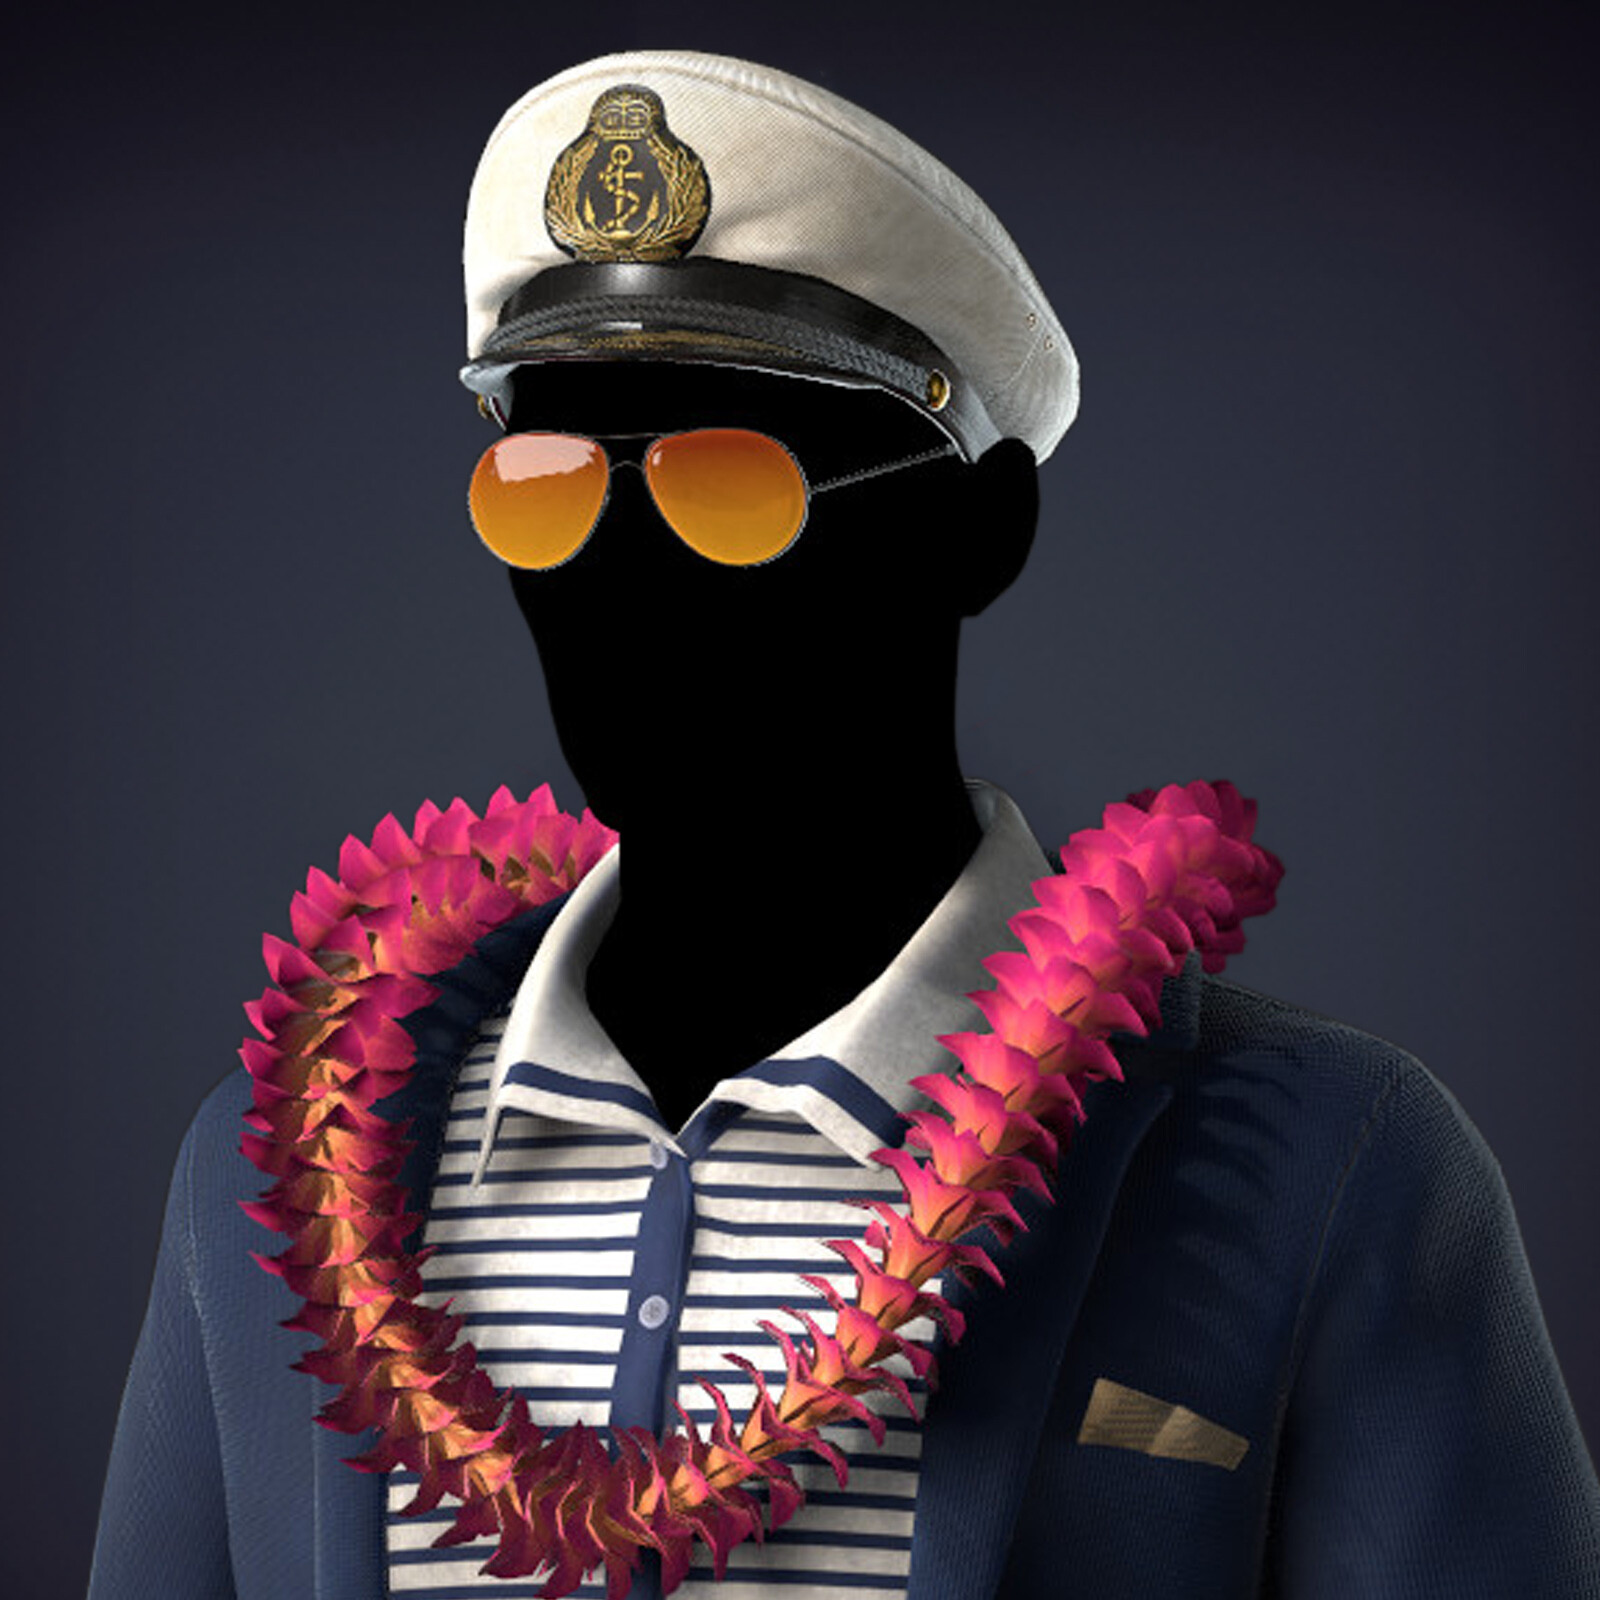 Yacht Rocker outfit